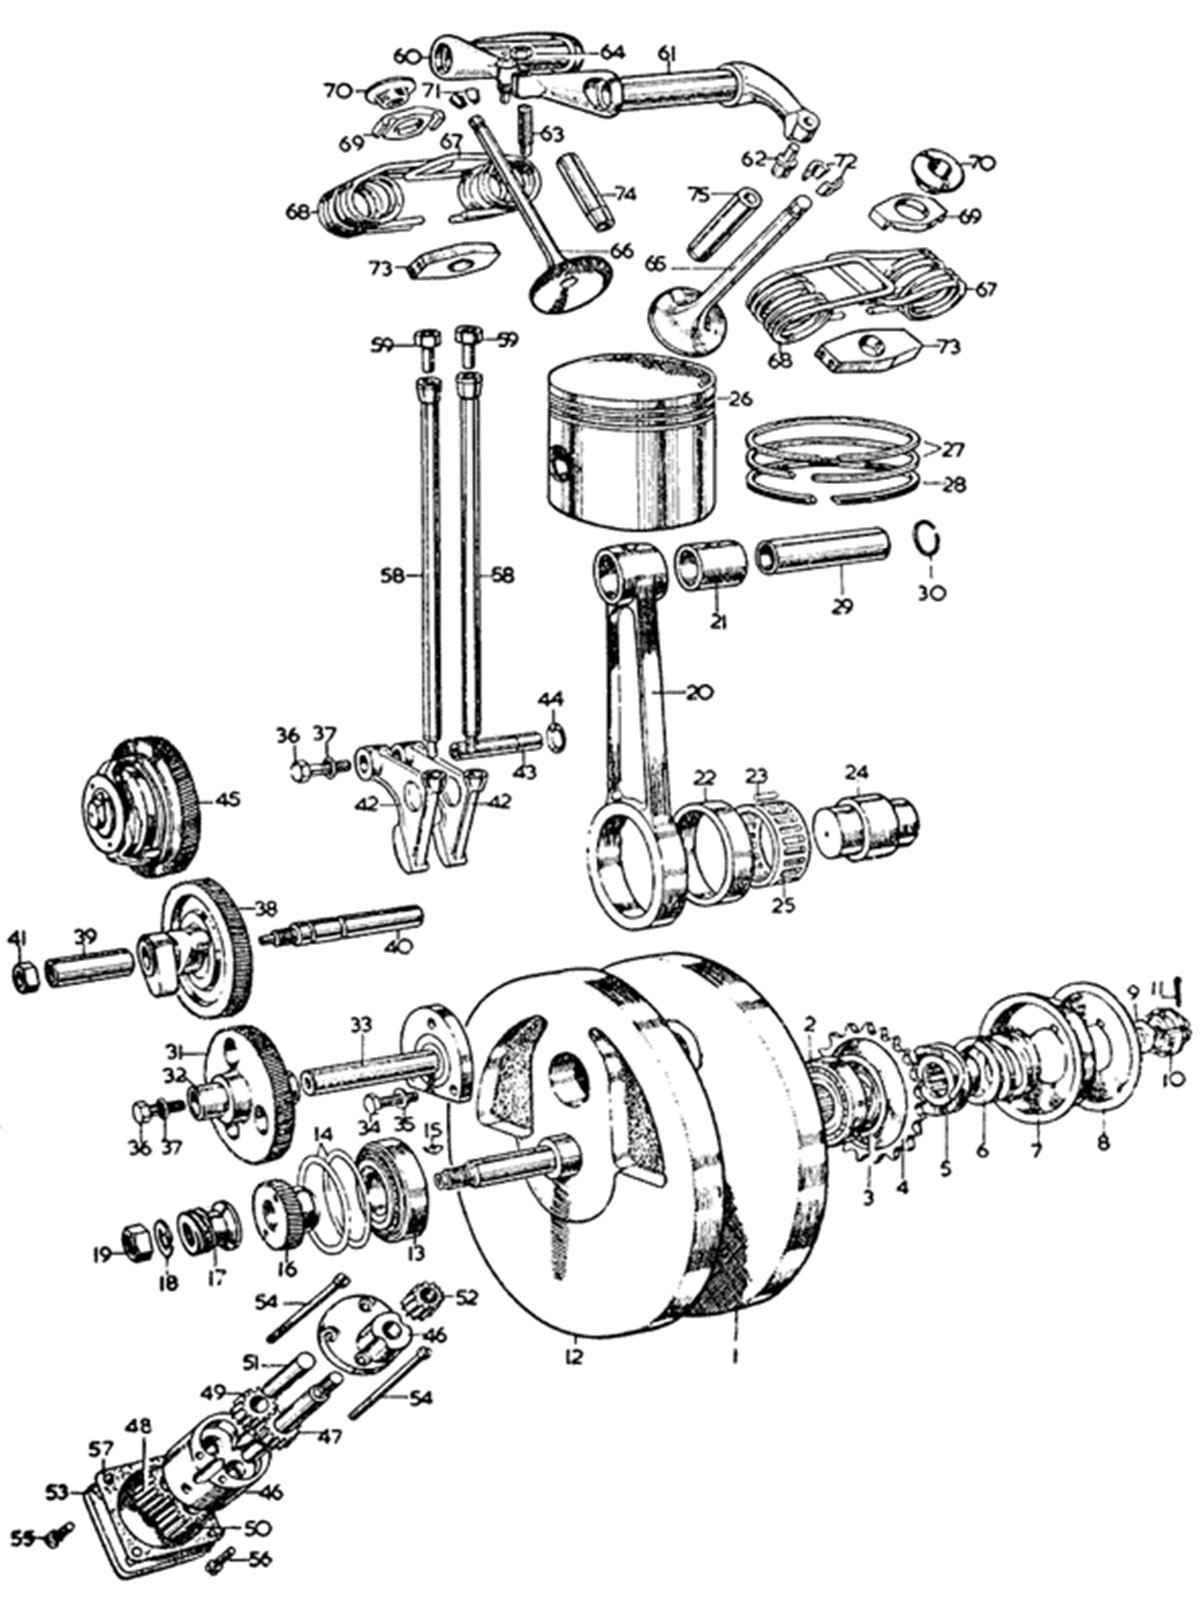 Car Engine Piston Diagram My Wiring Diagram